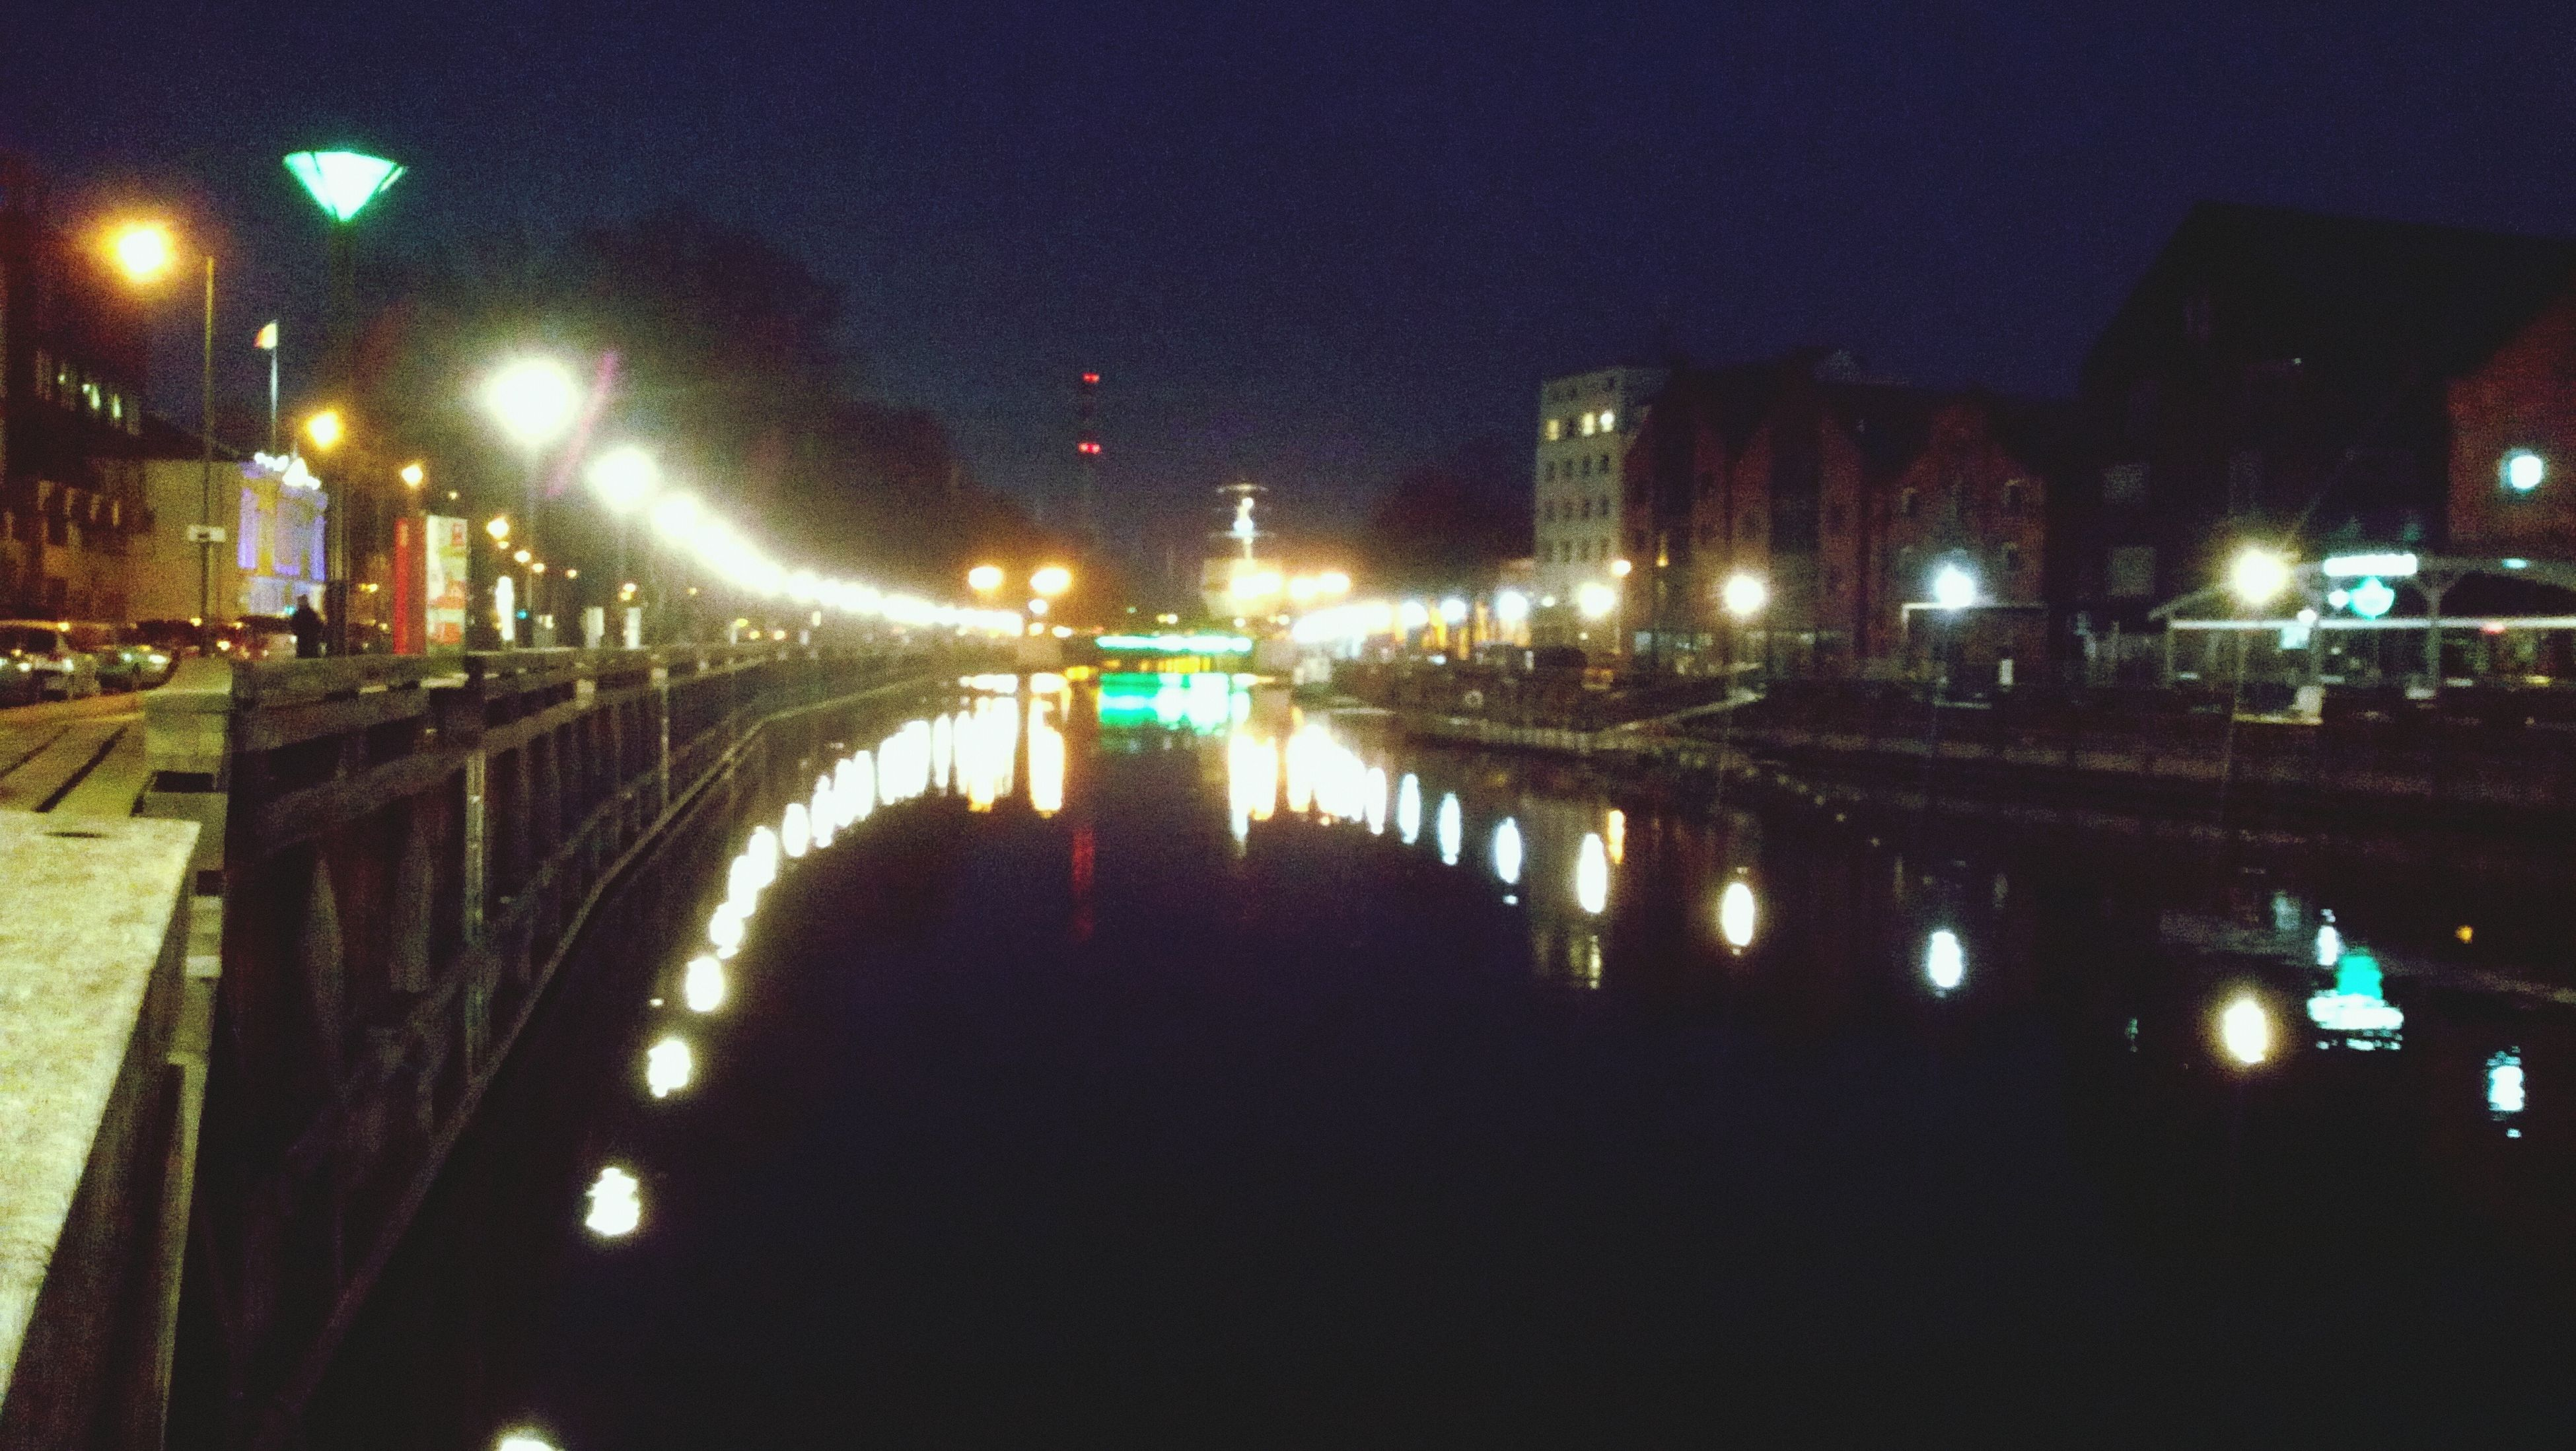 illuminated, night, street light, reflection, architecture, built structure, lighting equipment, water, city, building exterior, transportation, connection, the way forward, river, bridge - man made structure, canal, light - natural phenomenon, waterfront, street, sky